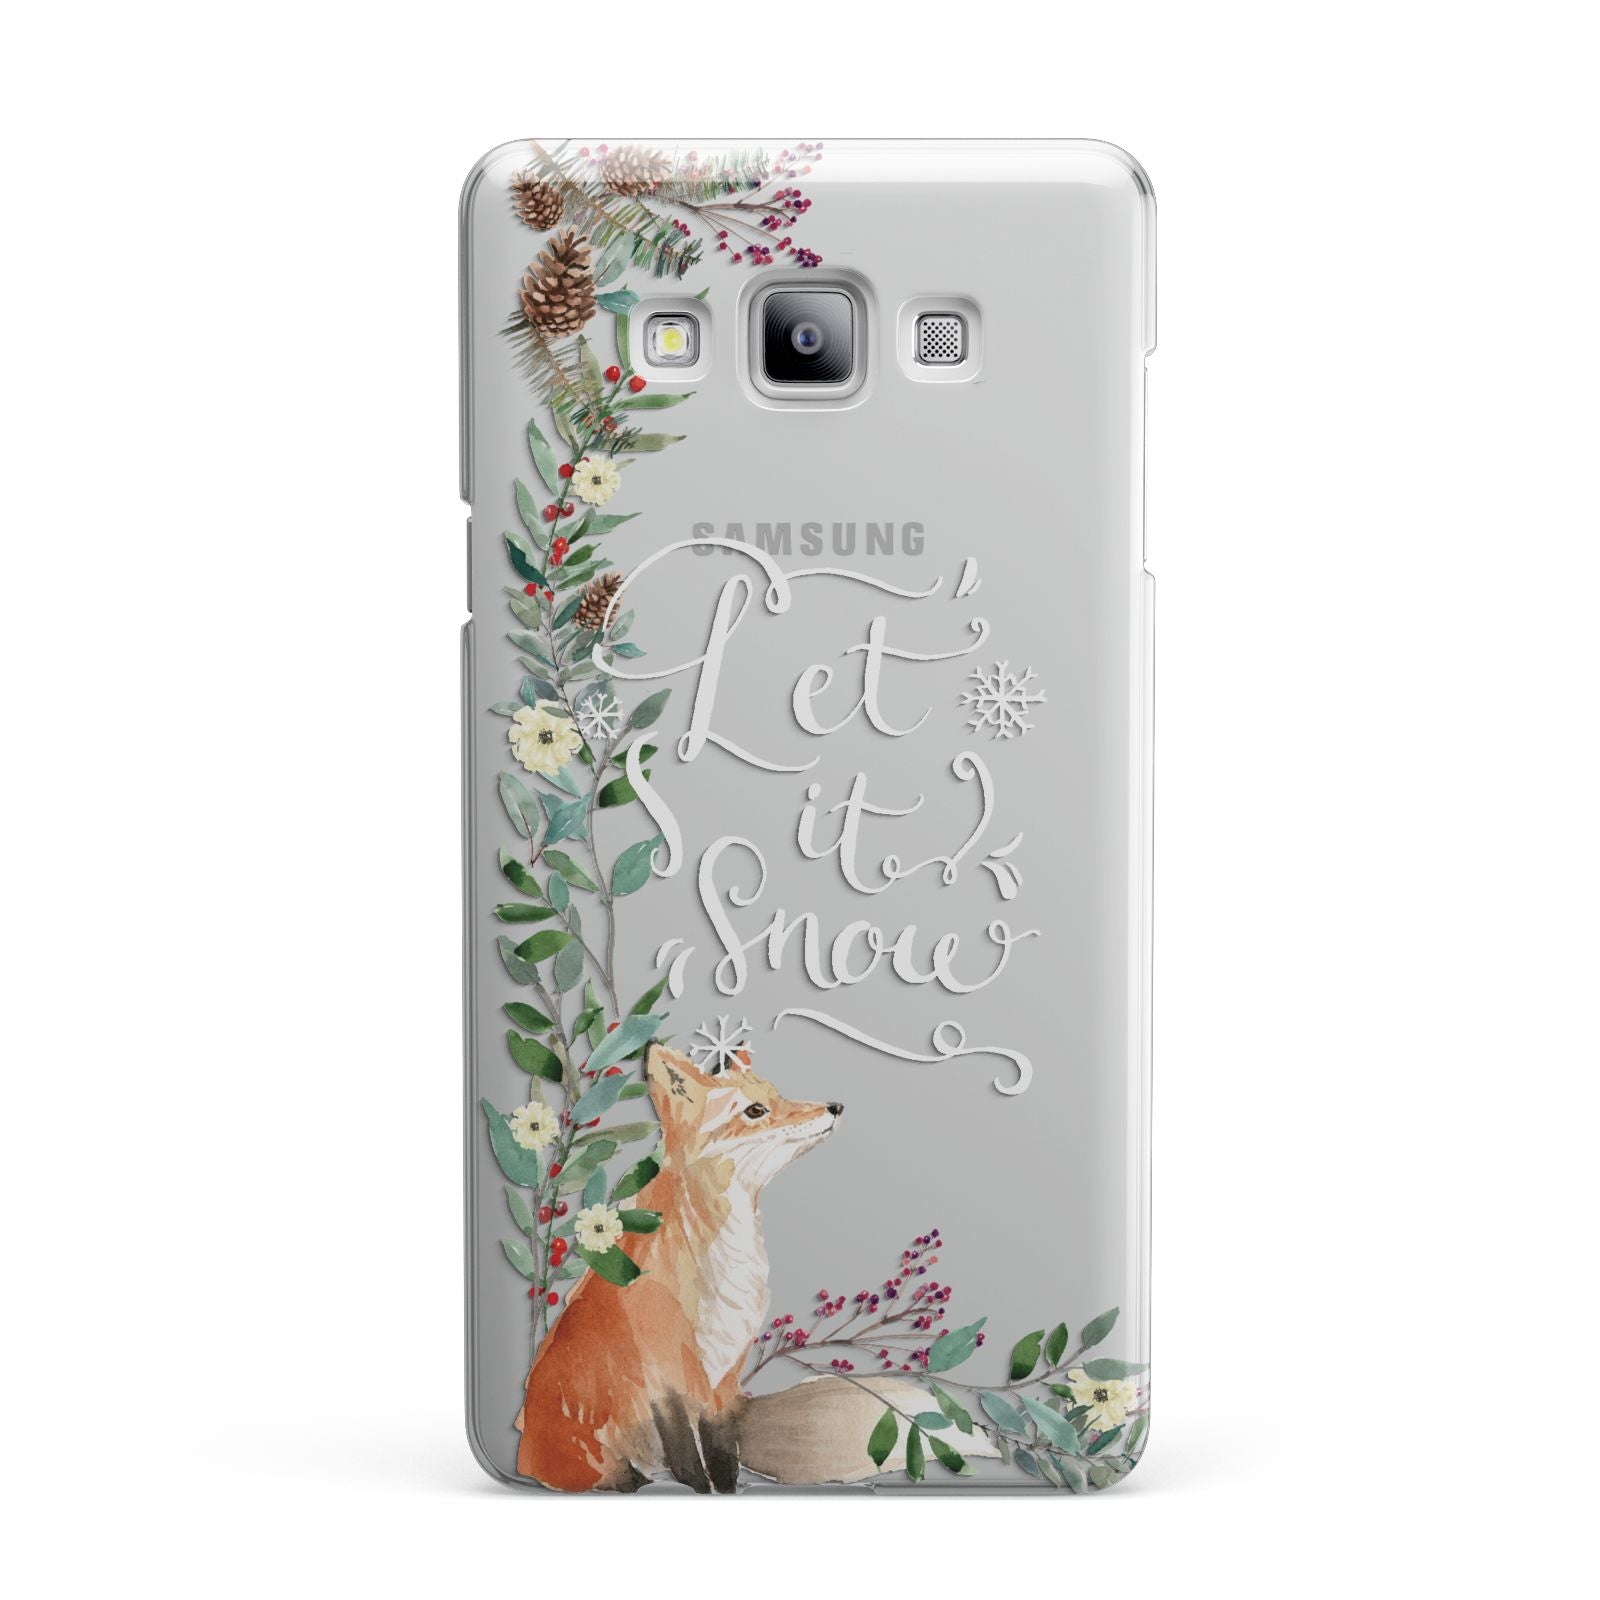 Let It Snow Christmas Samsung Galaxy A7 2015 Case